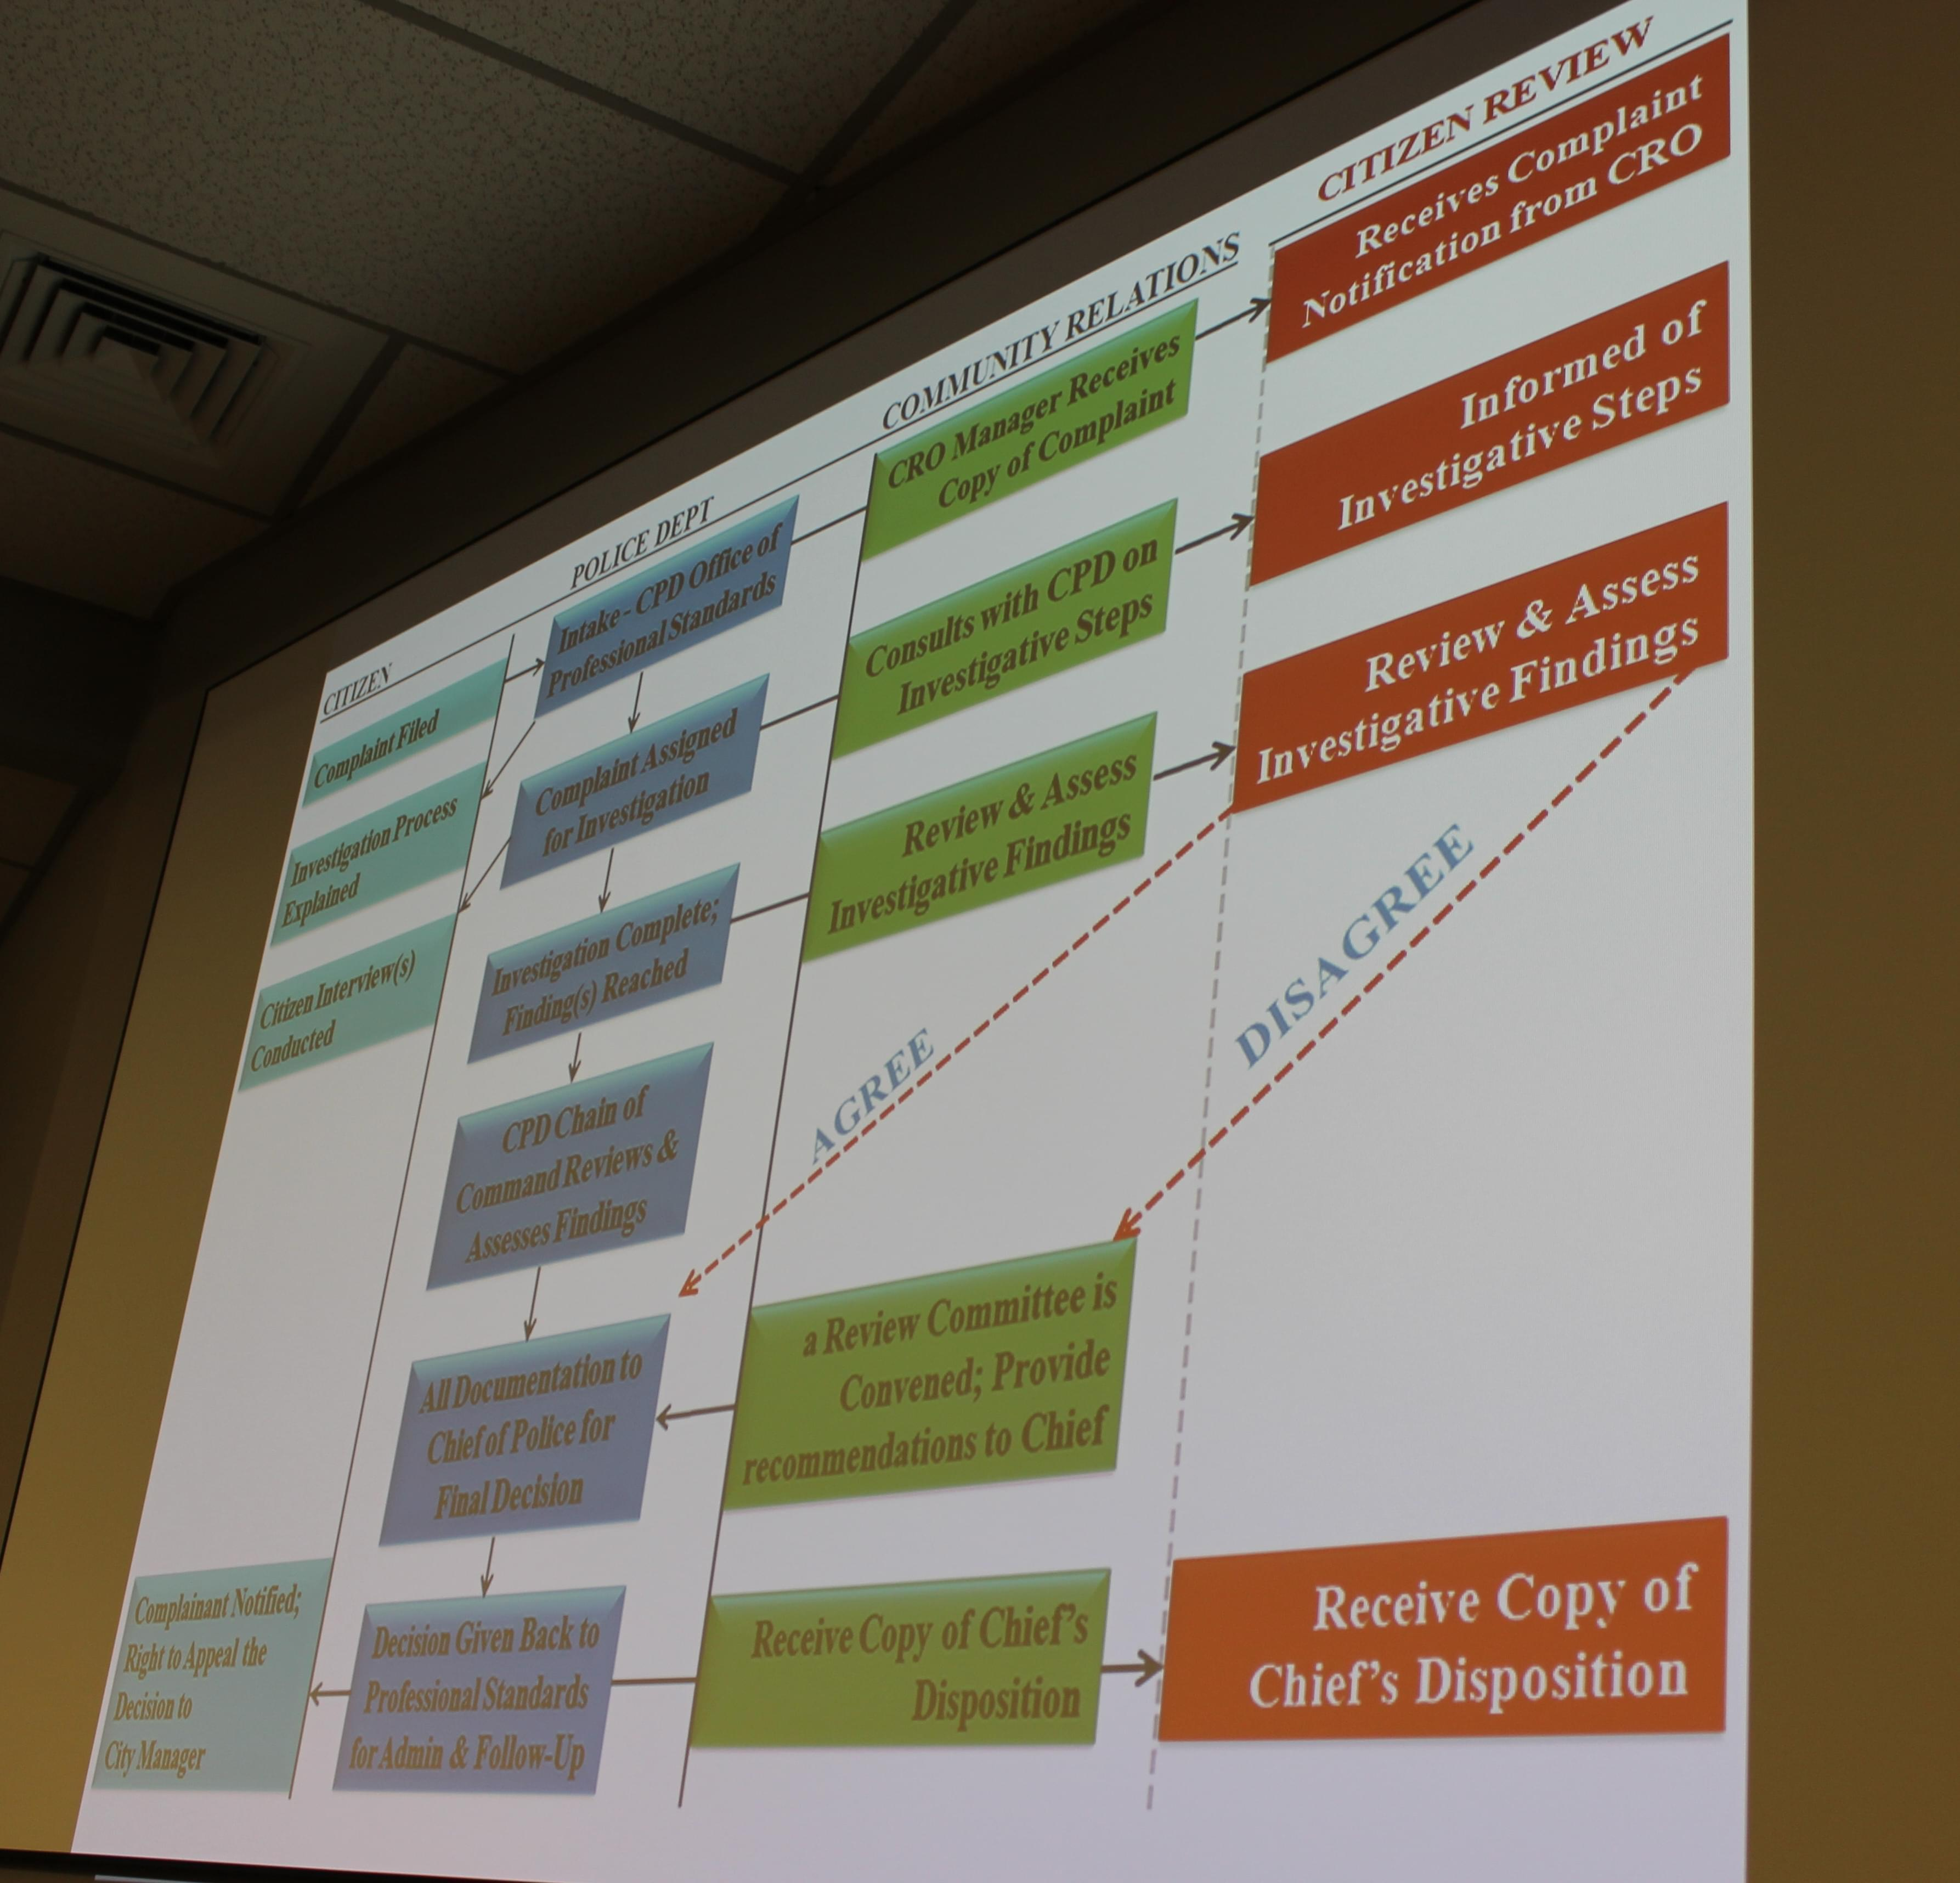 Chart shown during city council presentation by the Champaign Police Complaint Working Group on how to handle citizen complaints.